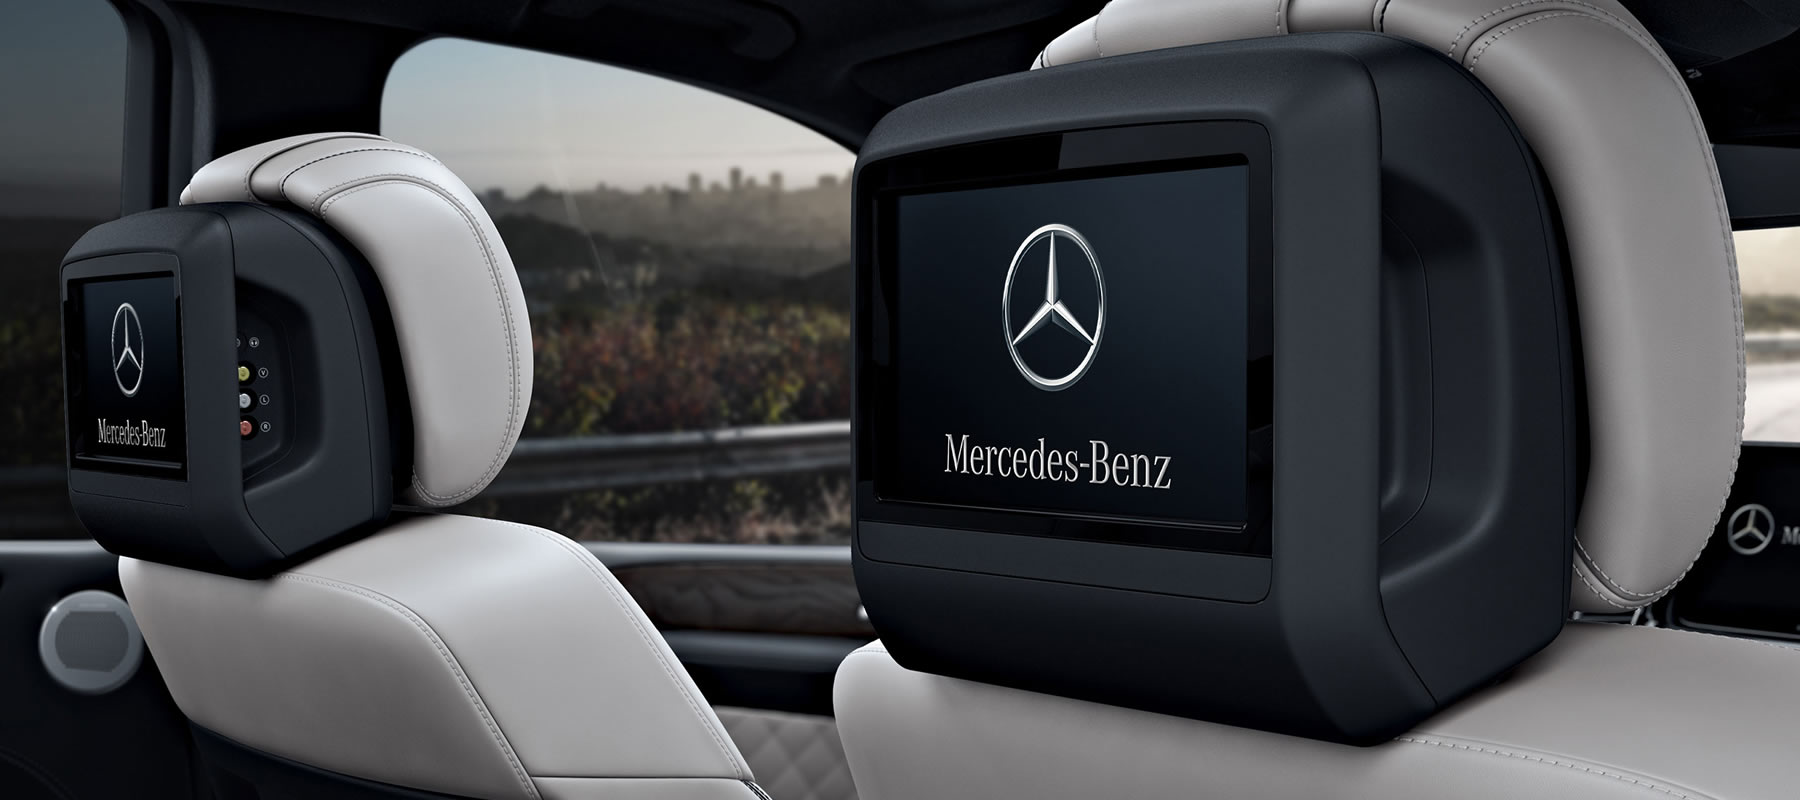 Genuine mercedes benz parts accessories at mercedes benz for Mercedes benz customer service email address